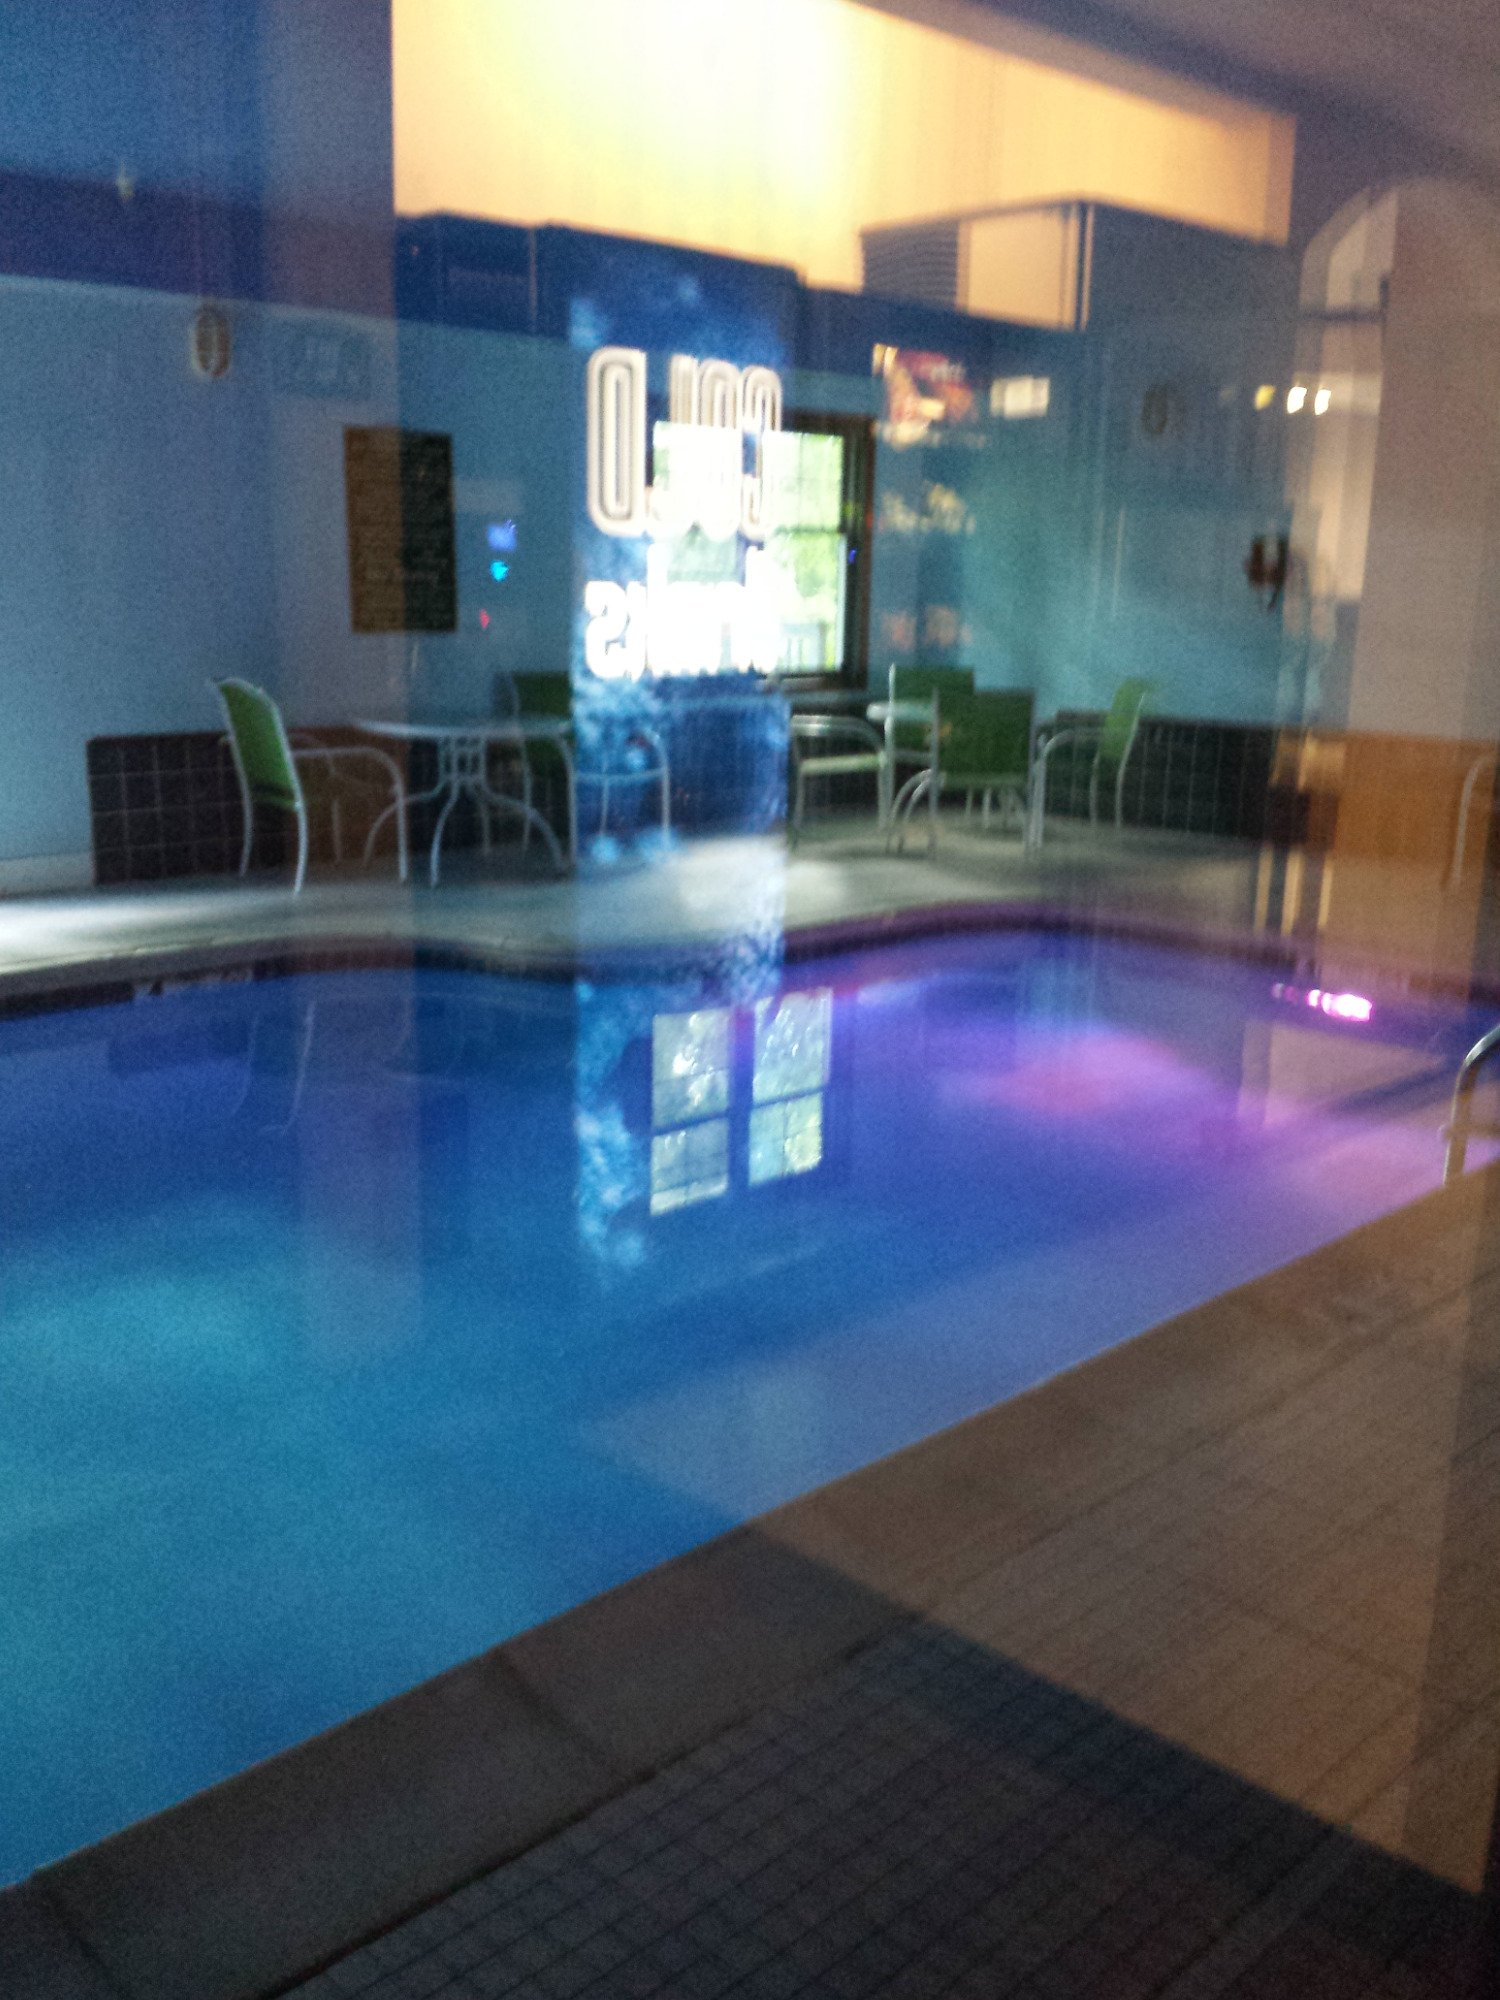 The pool clean and the underwater changing lights were relaxing.